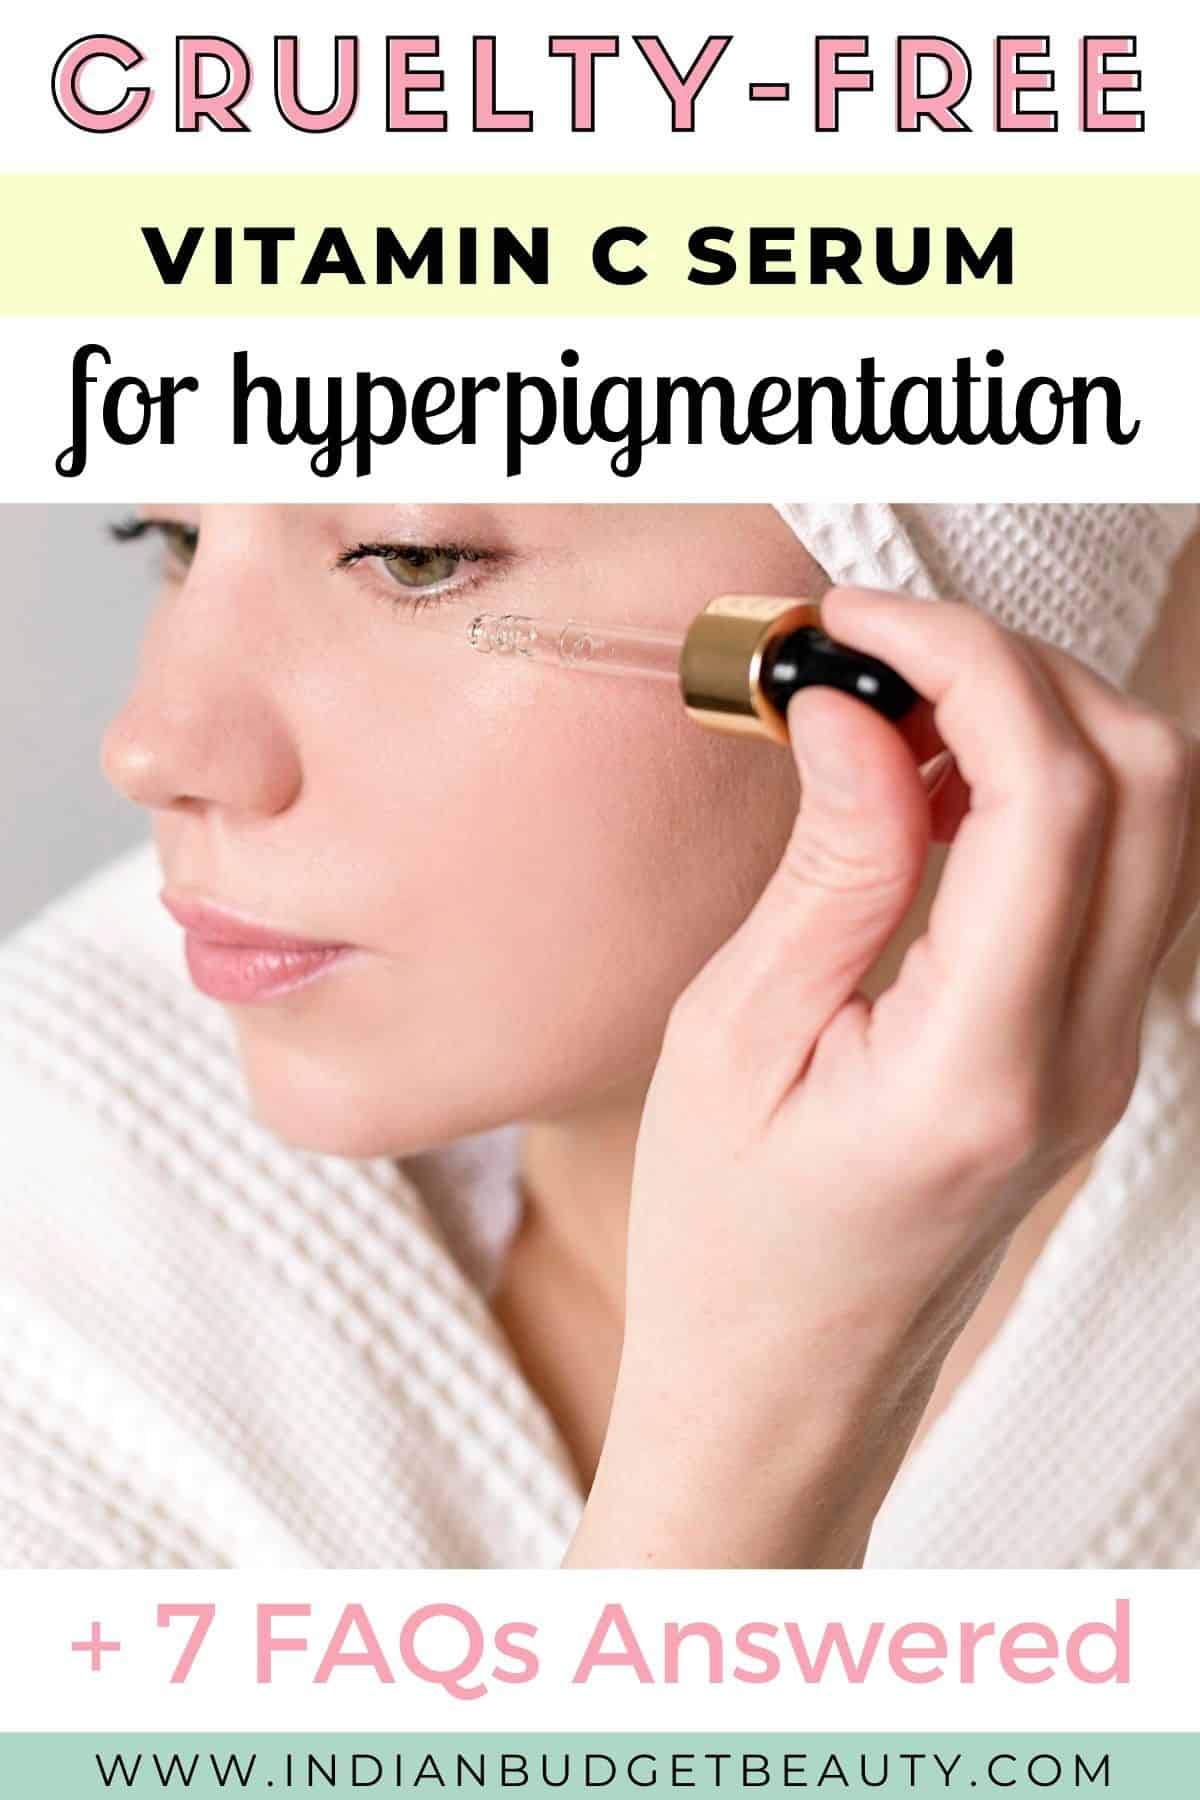 best vitamin c serum for hyperpigmentation in india